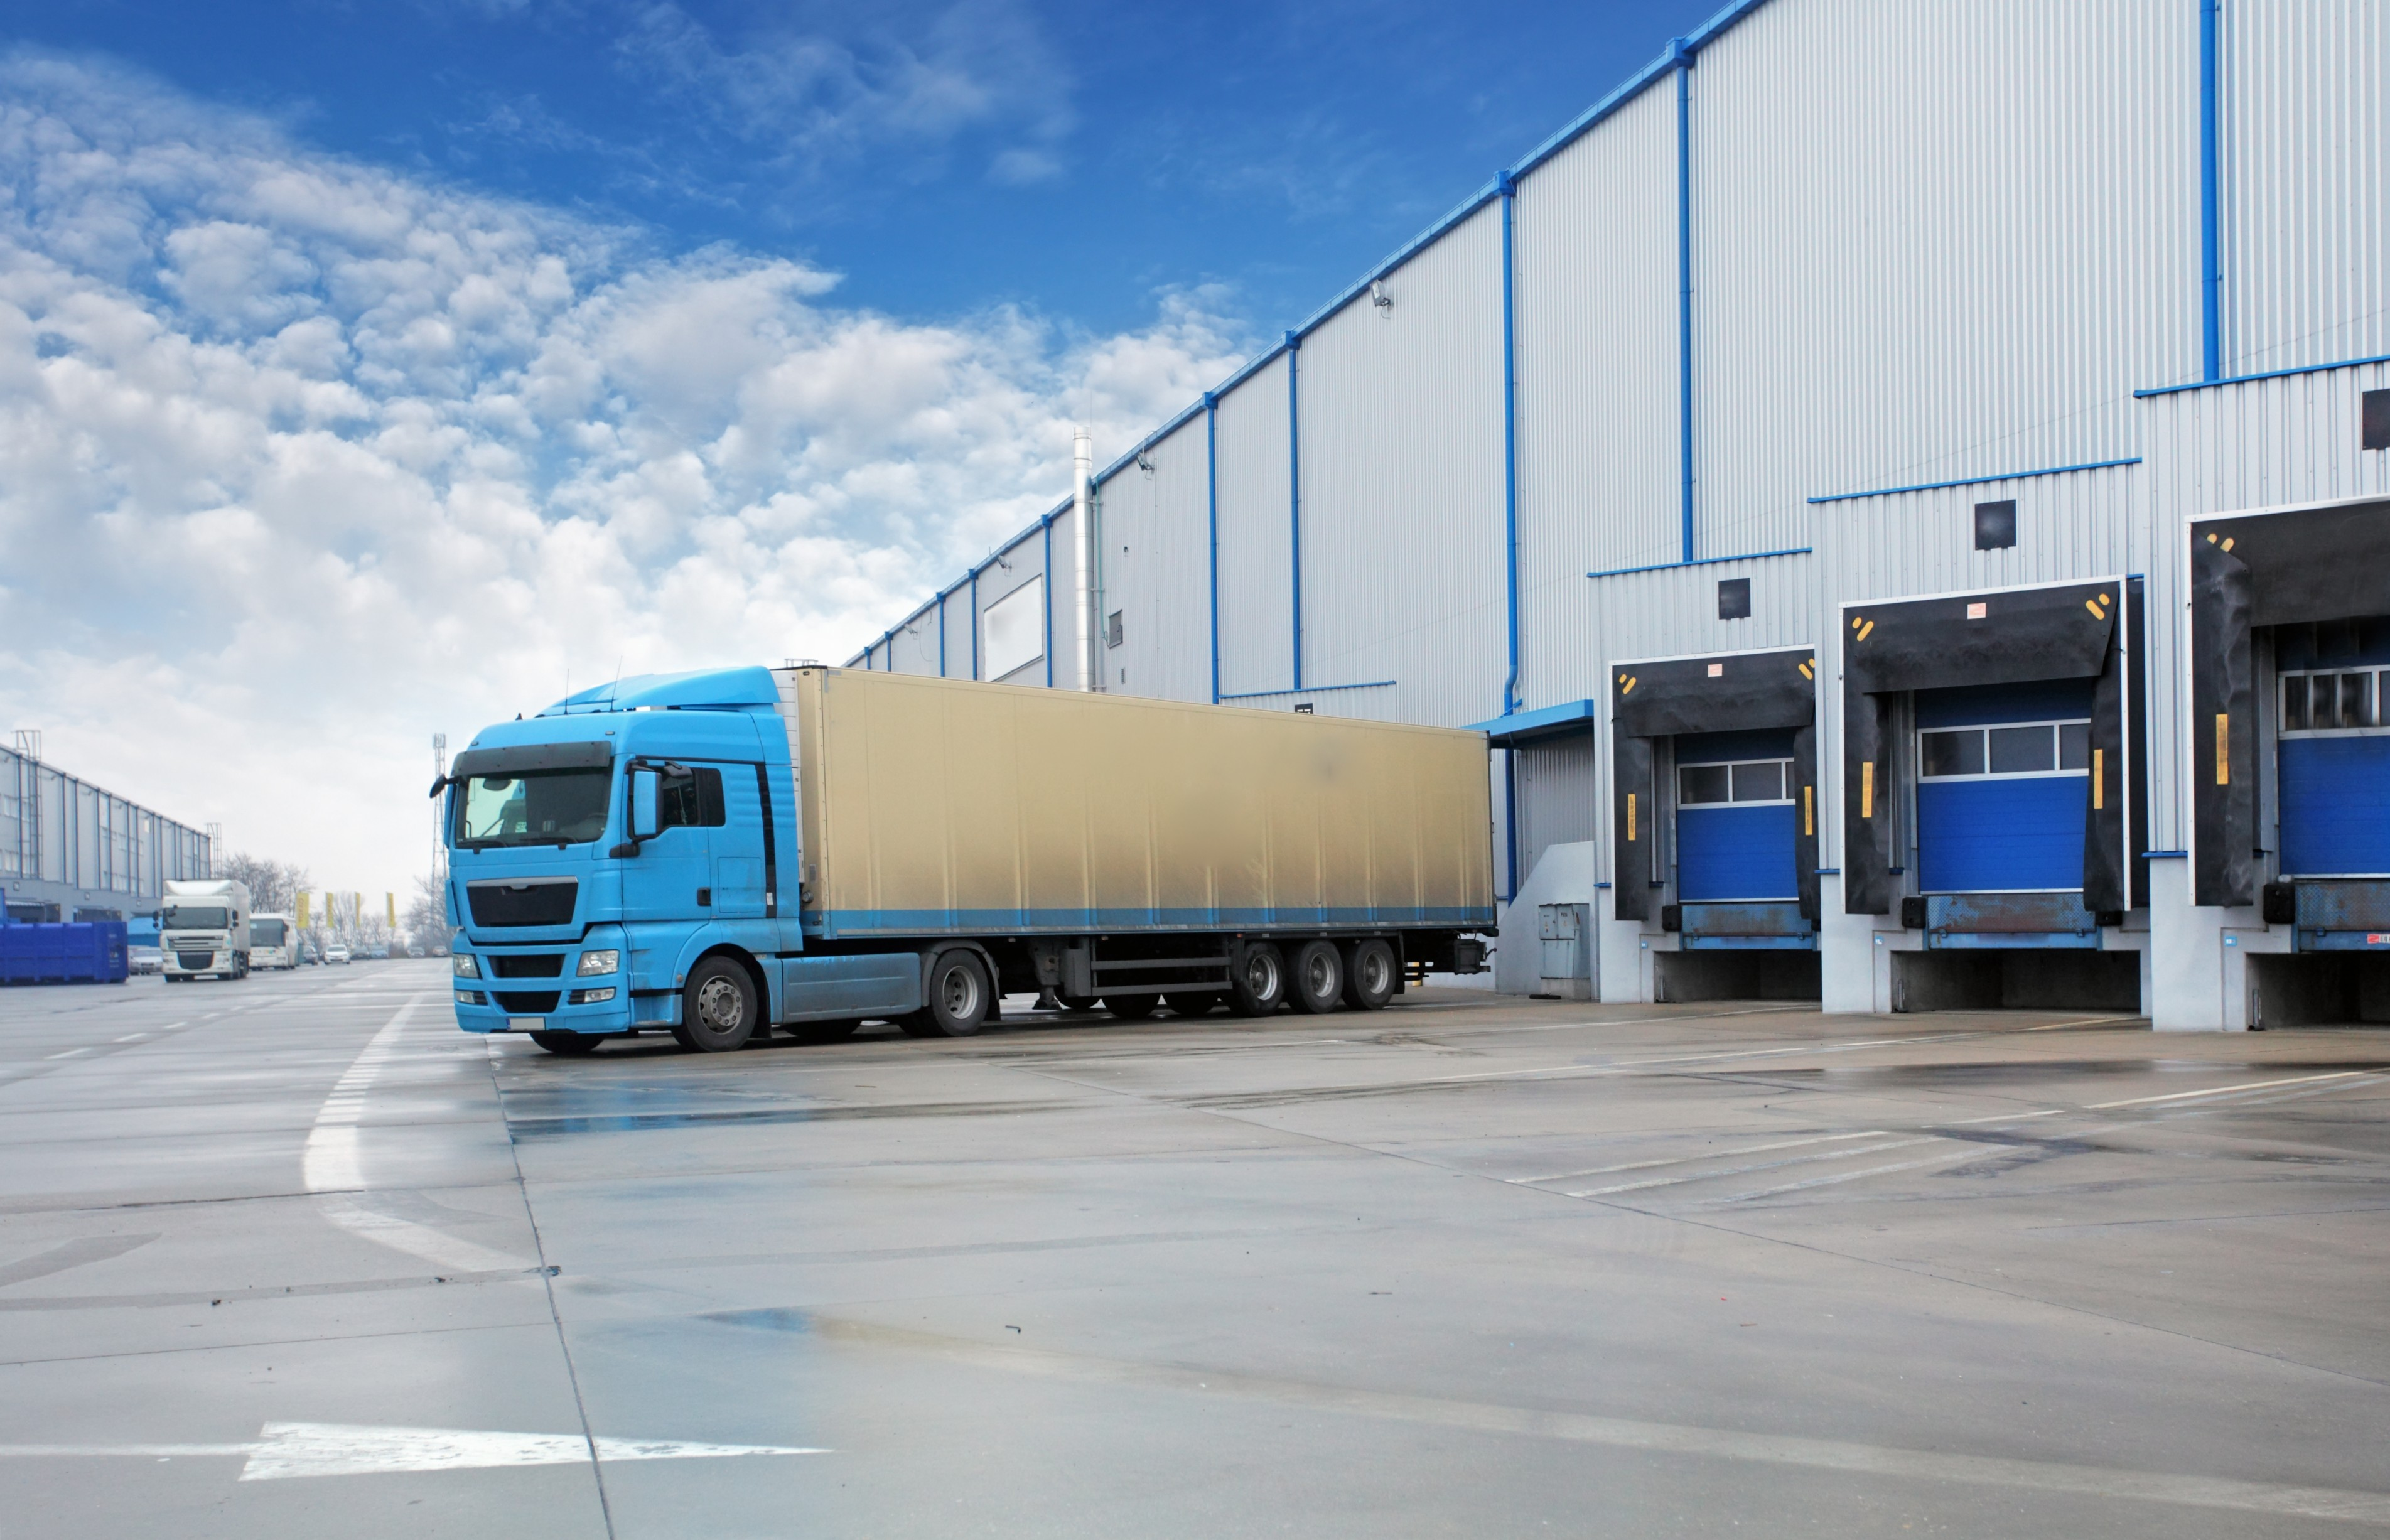 Westminster provide staff and asset protection systems to the delivery and fulfilment sector